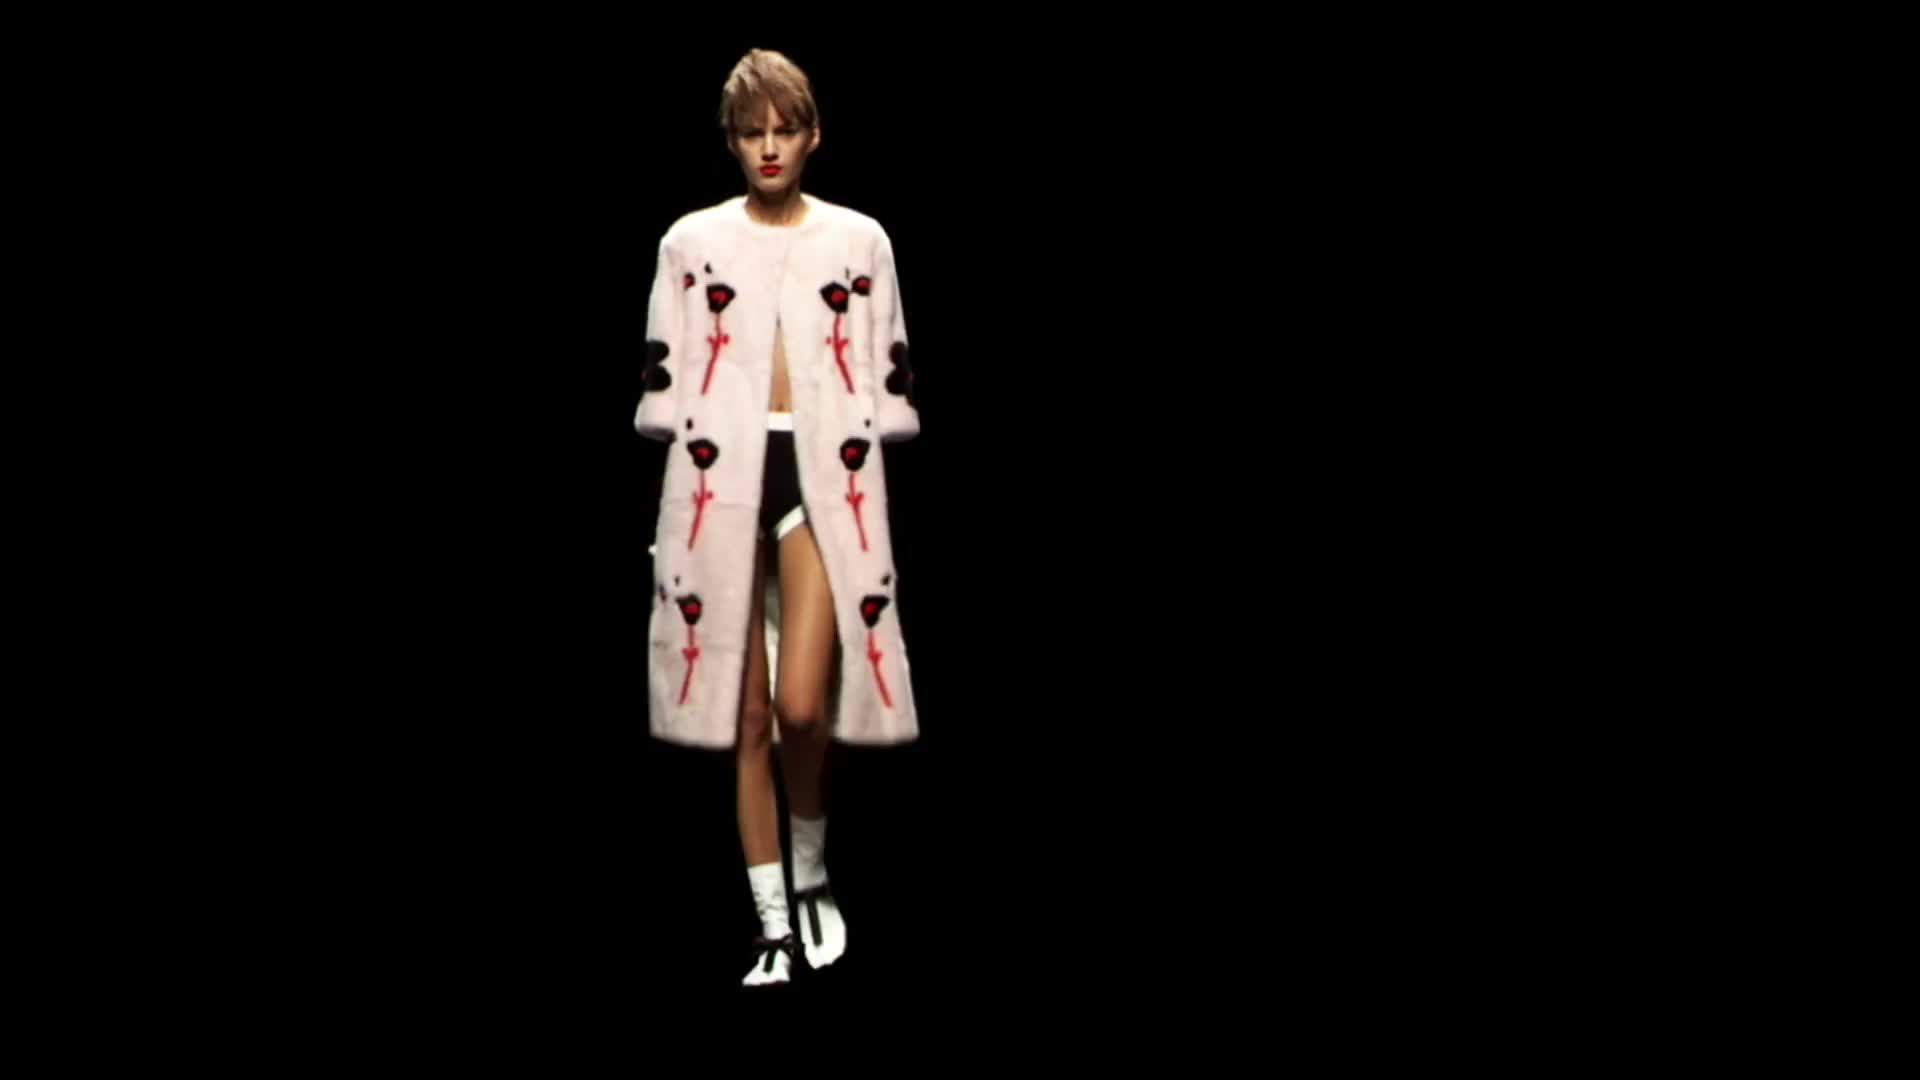 Prada flowers logo design cgi fashion catwalk runway black